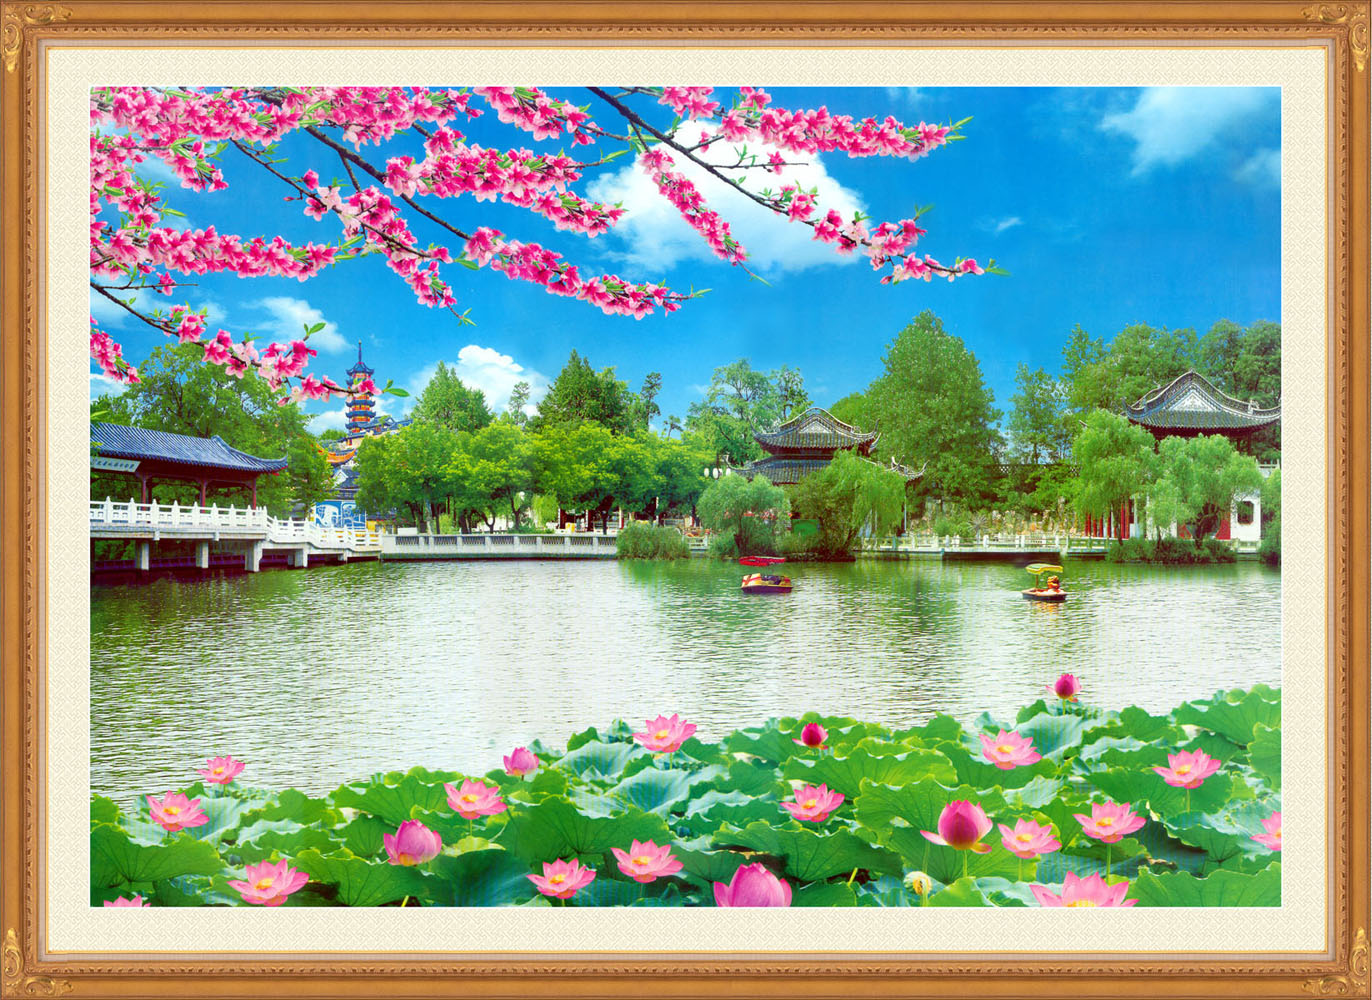 707 poster panels inkjet sticker material 343 poster printing landscape painting decorative painting